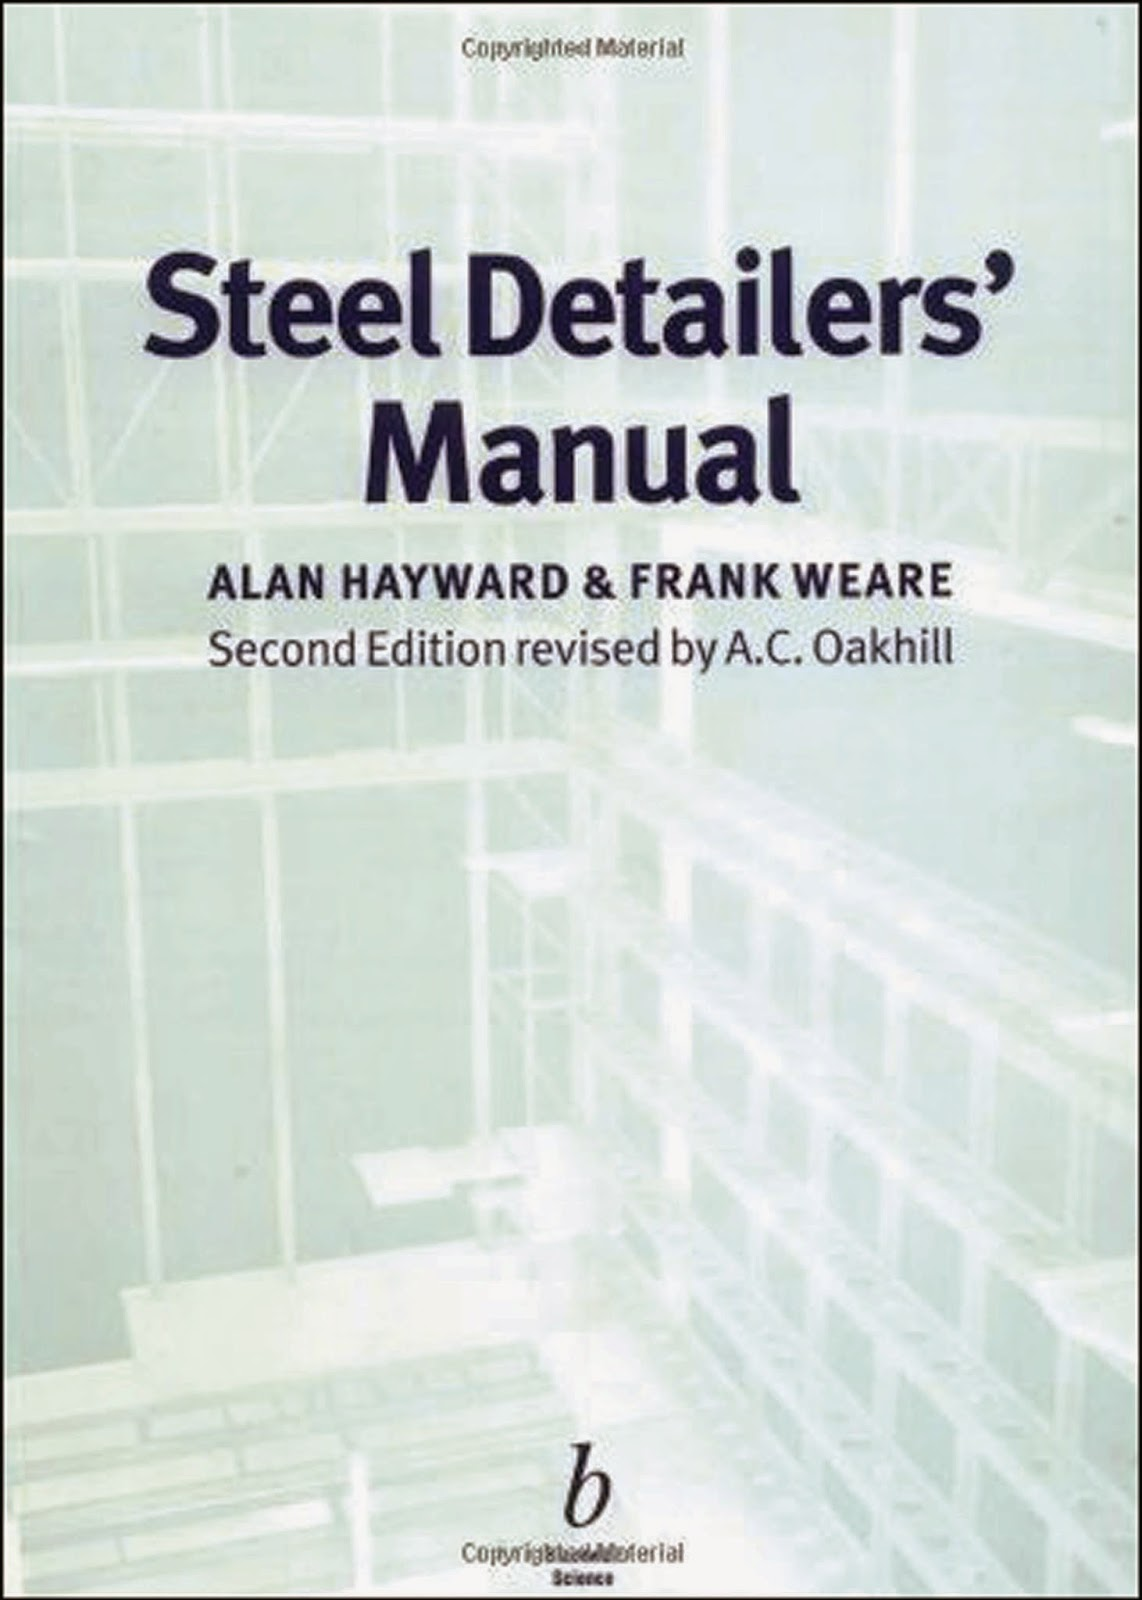 Book: Steel Detailer's Manual 2nd Edition by Alan Hayward, Frank Weare